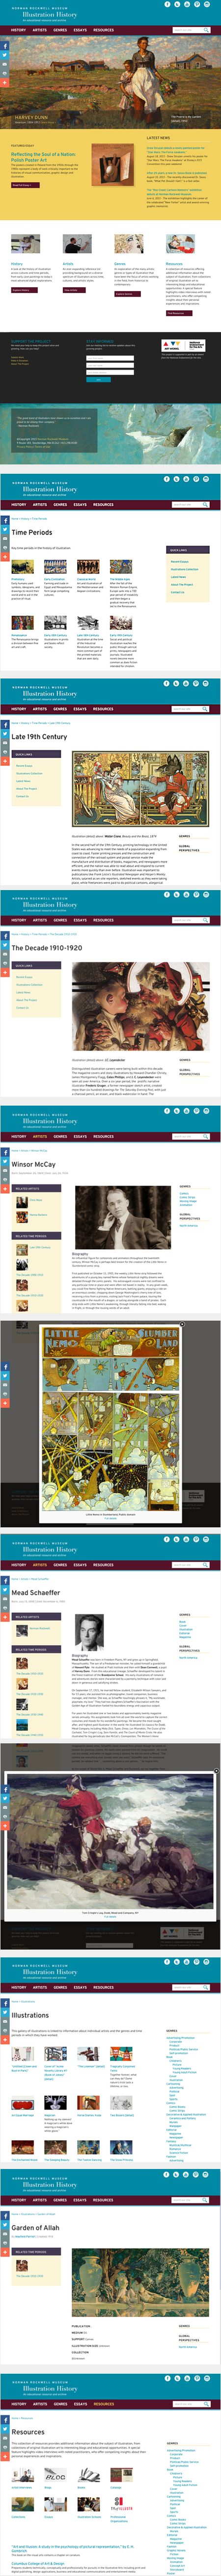 NRM Illustration History resource and archive